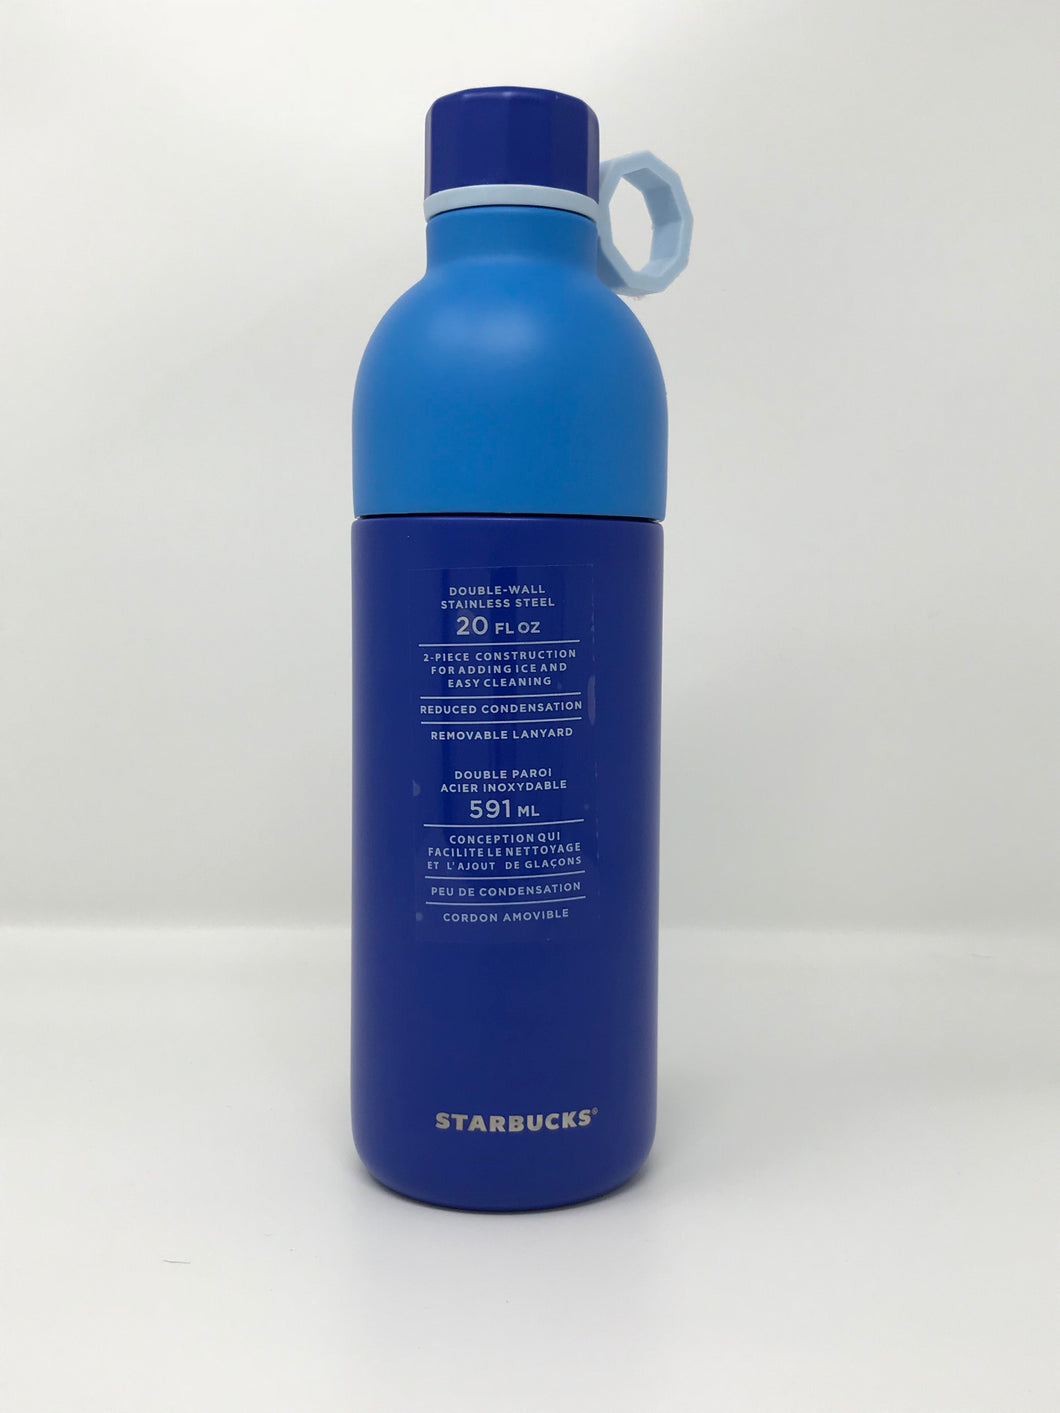 Starbucks Double-Wall Stainless Steel Water Bottle - 20 fl oz